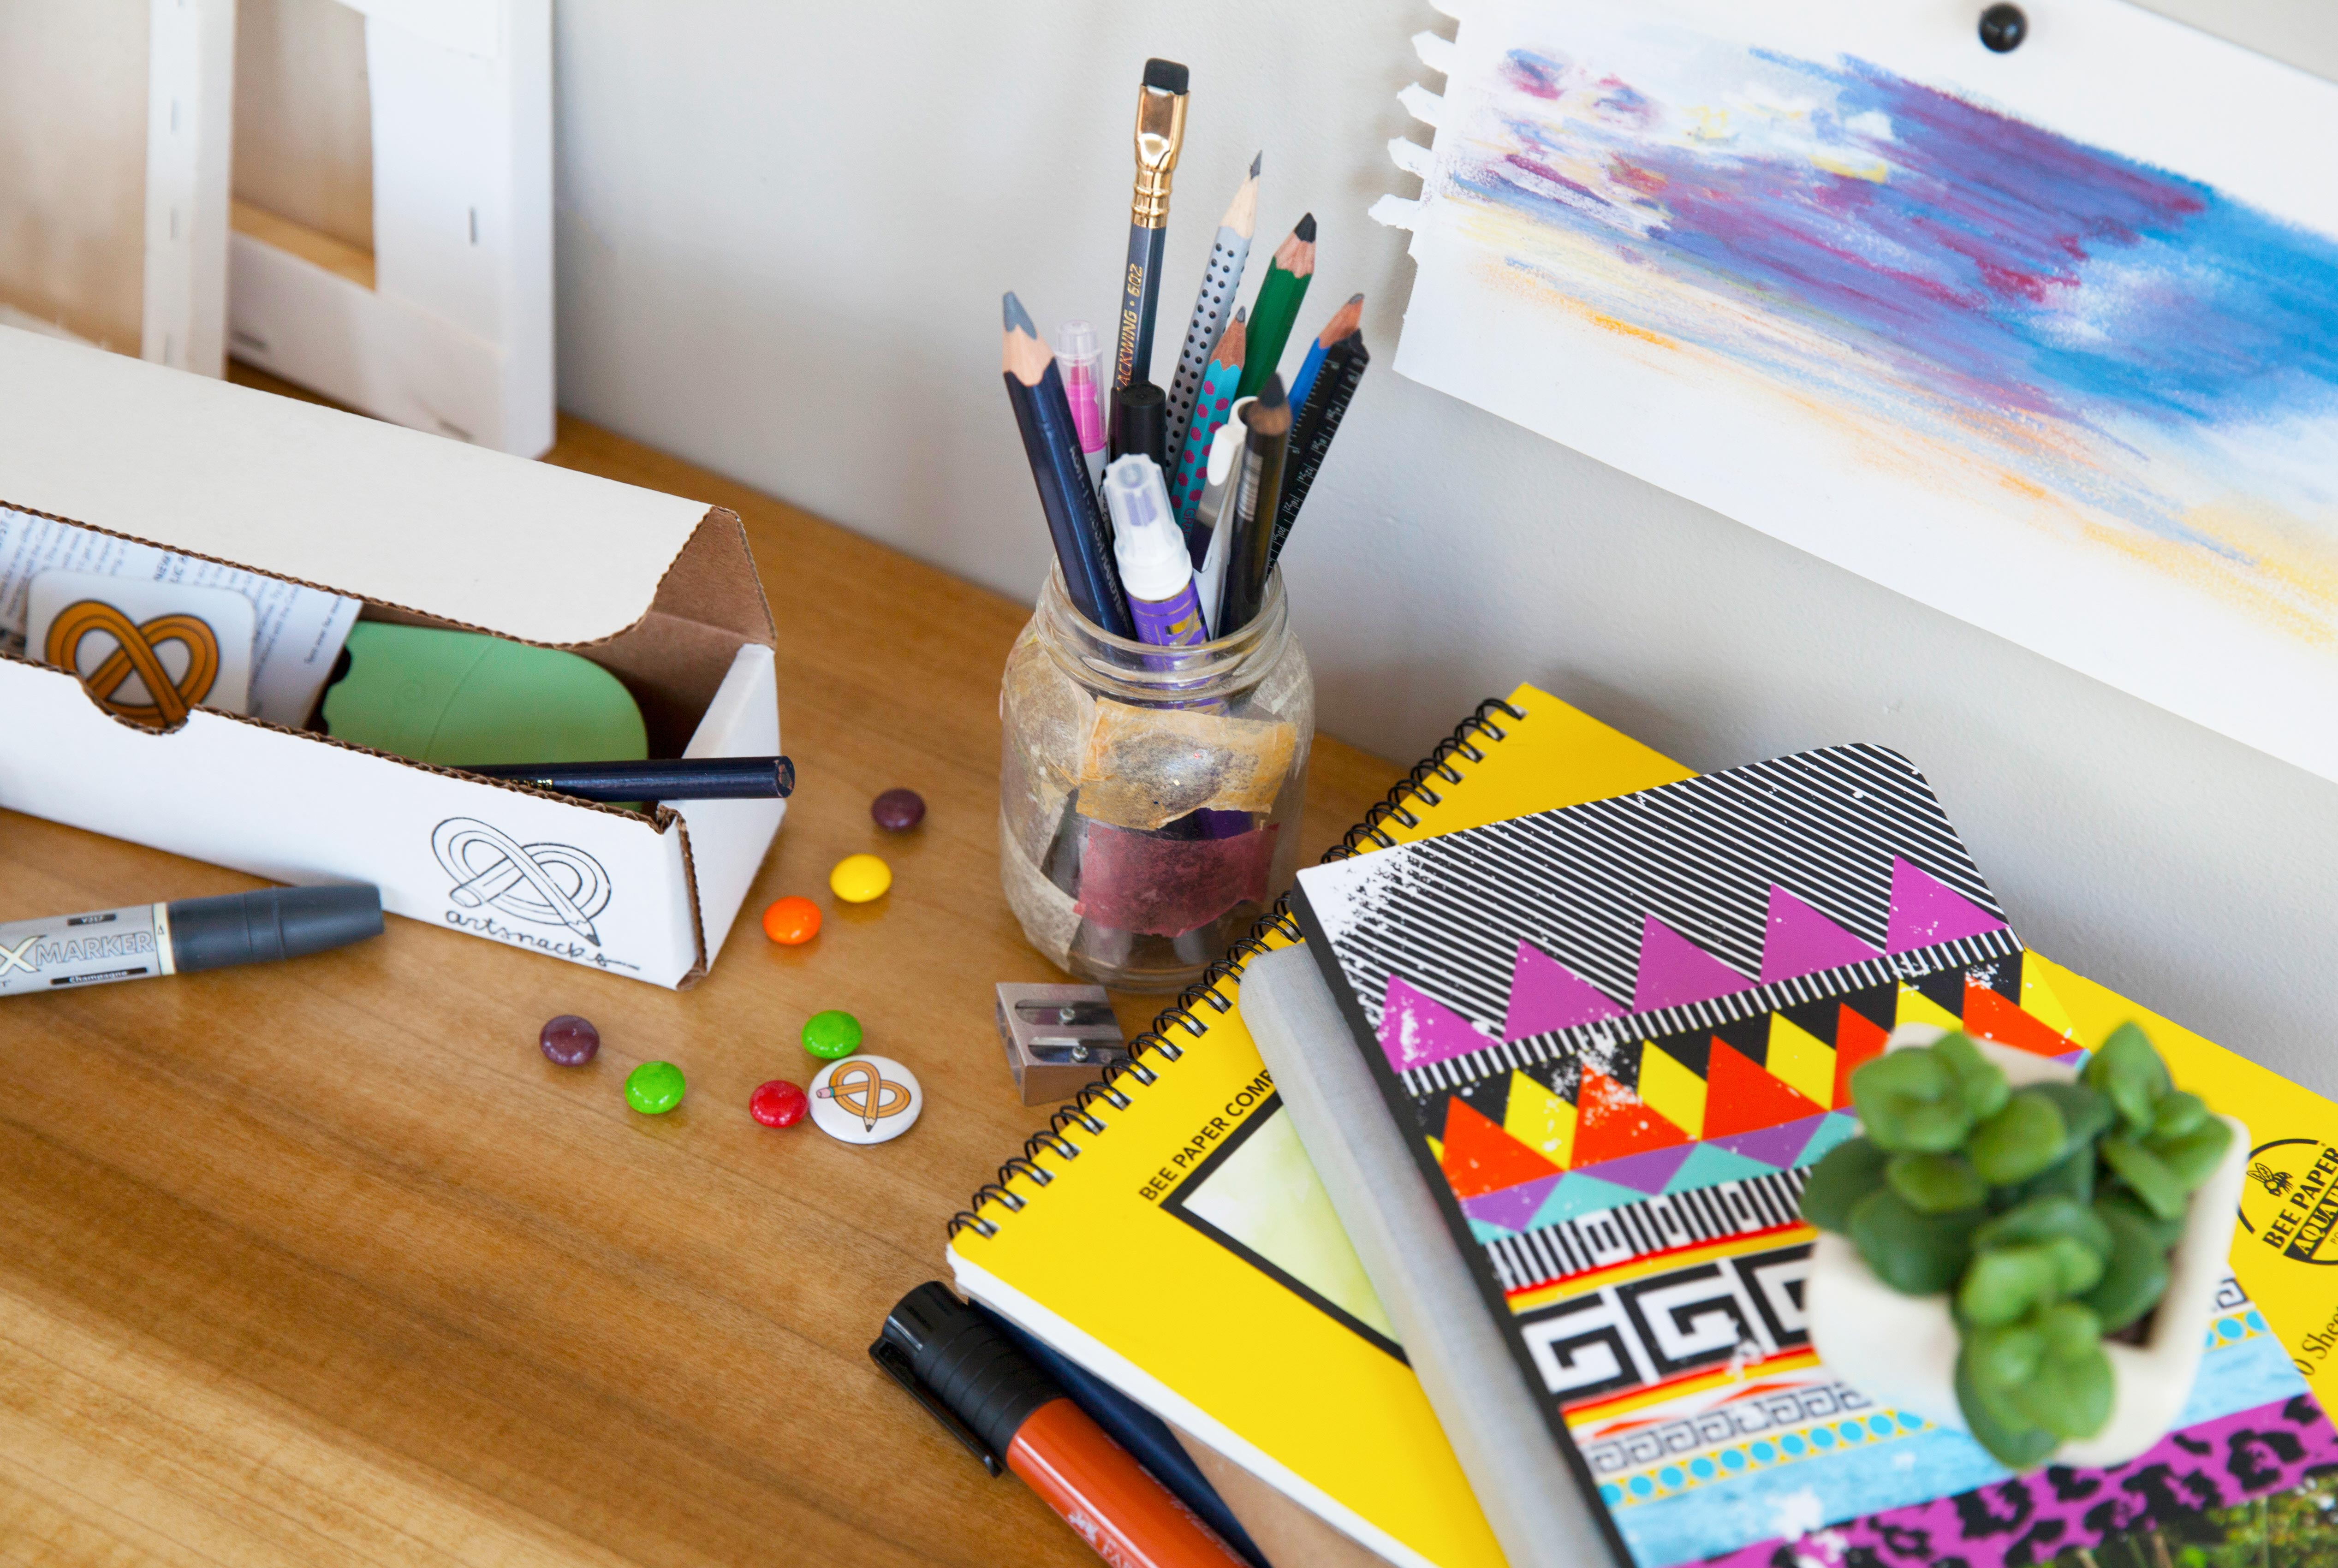 an open box from ArtSnacks sits on a desk next to books and paper